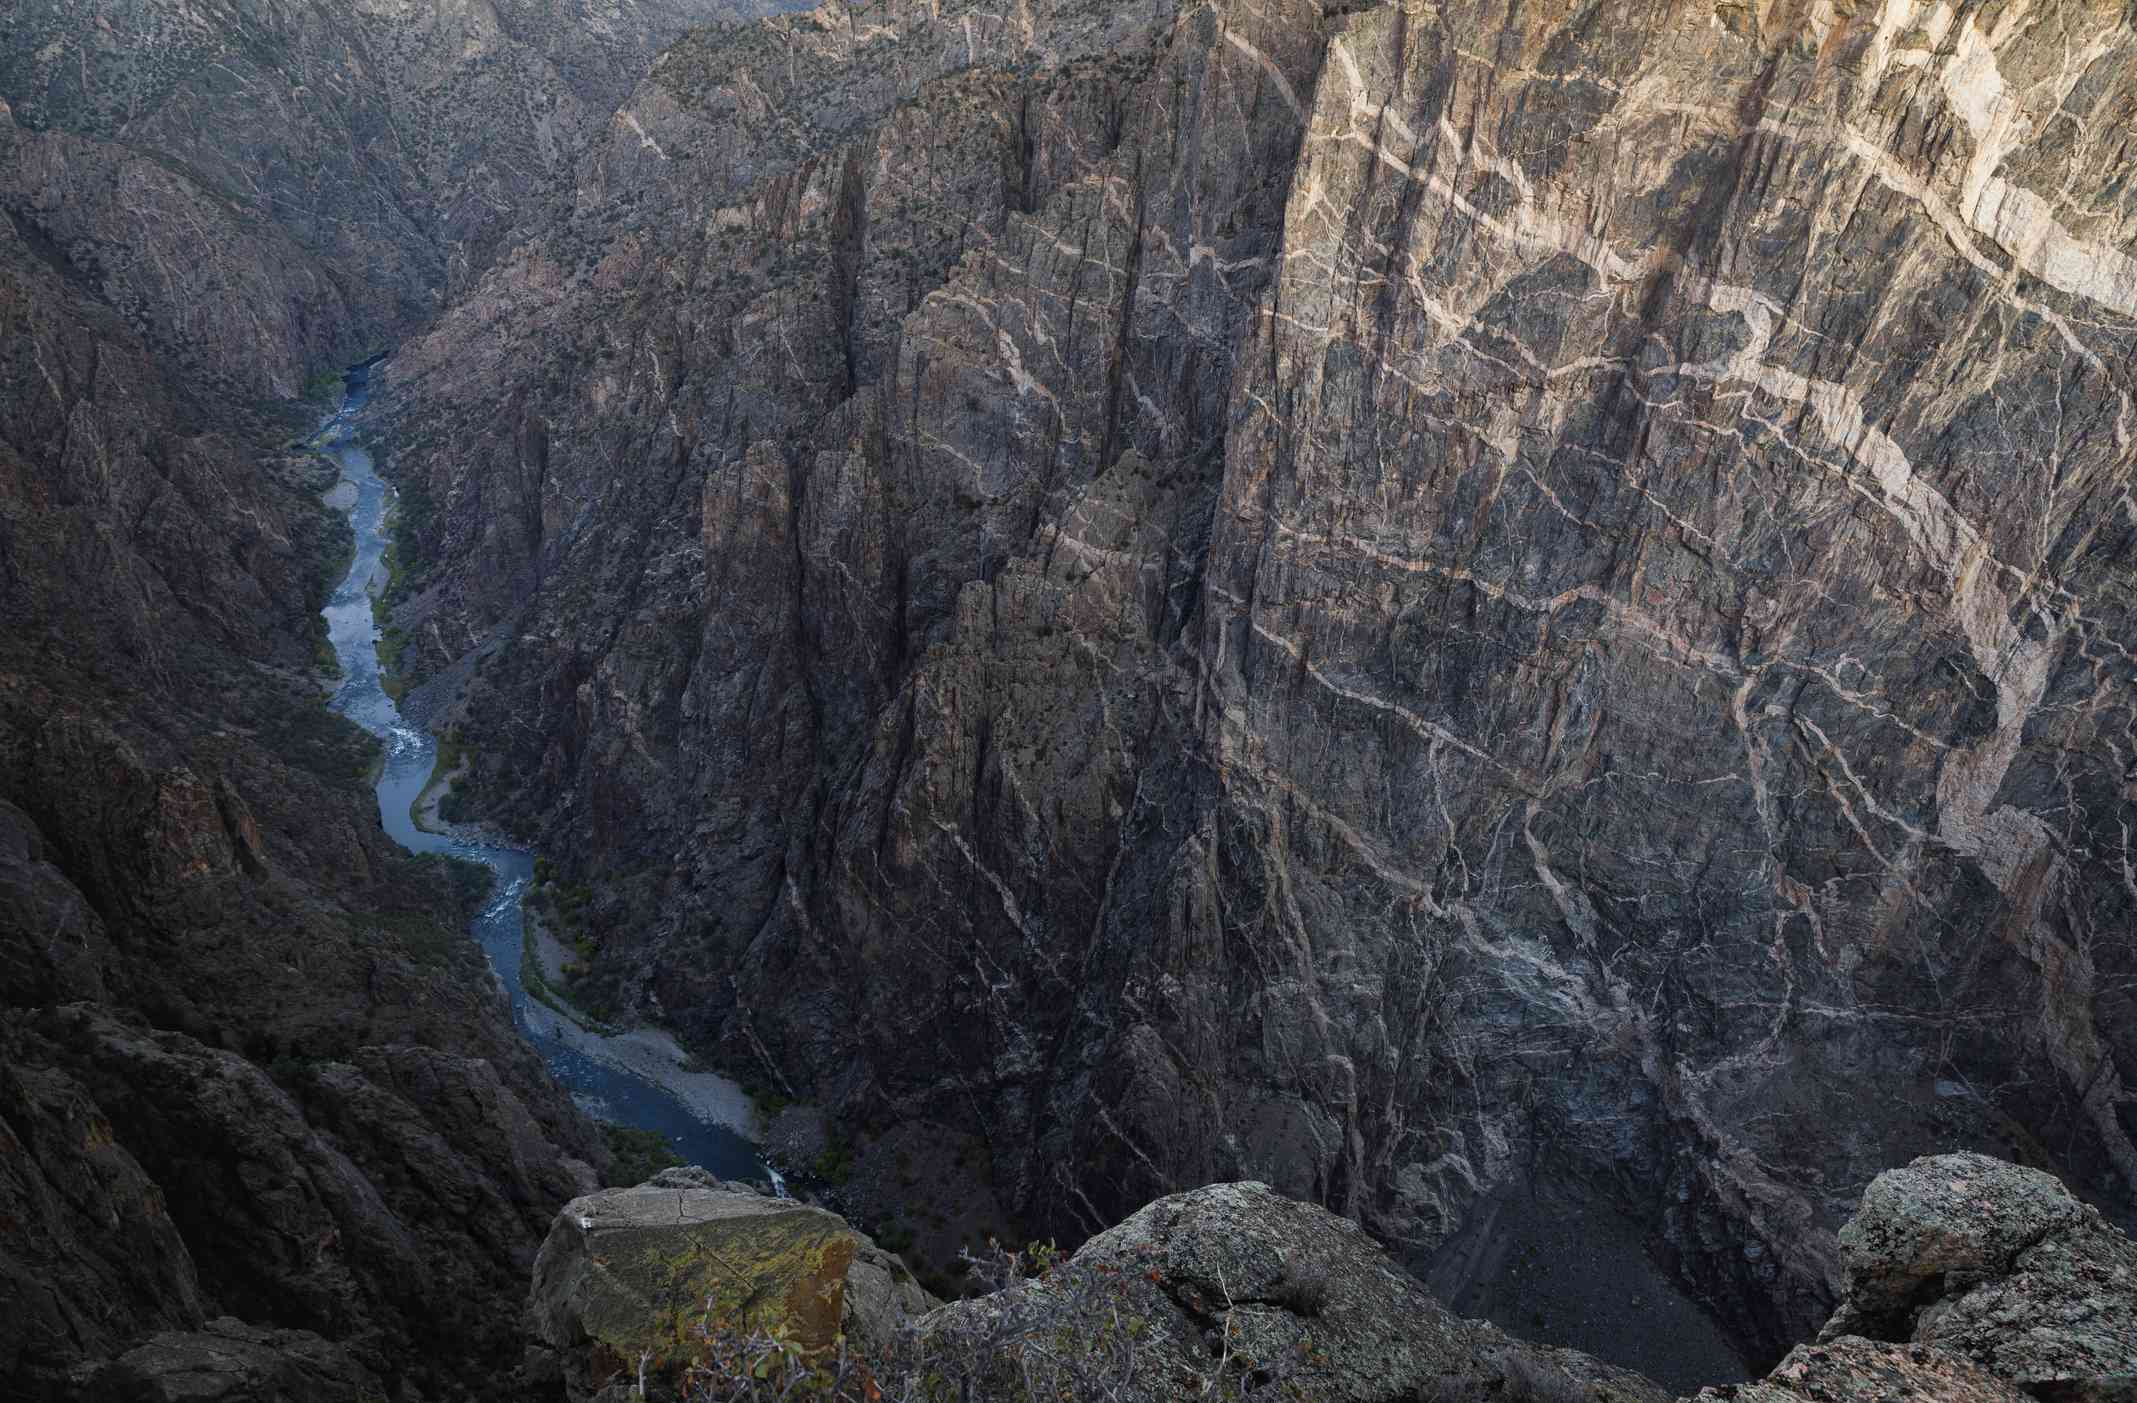 Cliffs of the Black Canyon of the Gunnison National Park